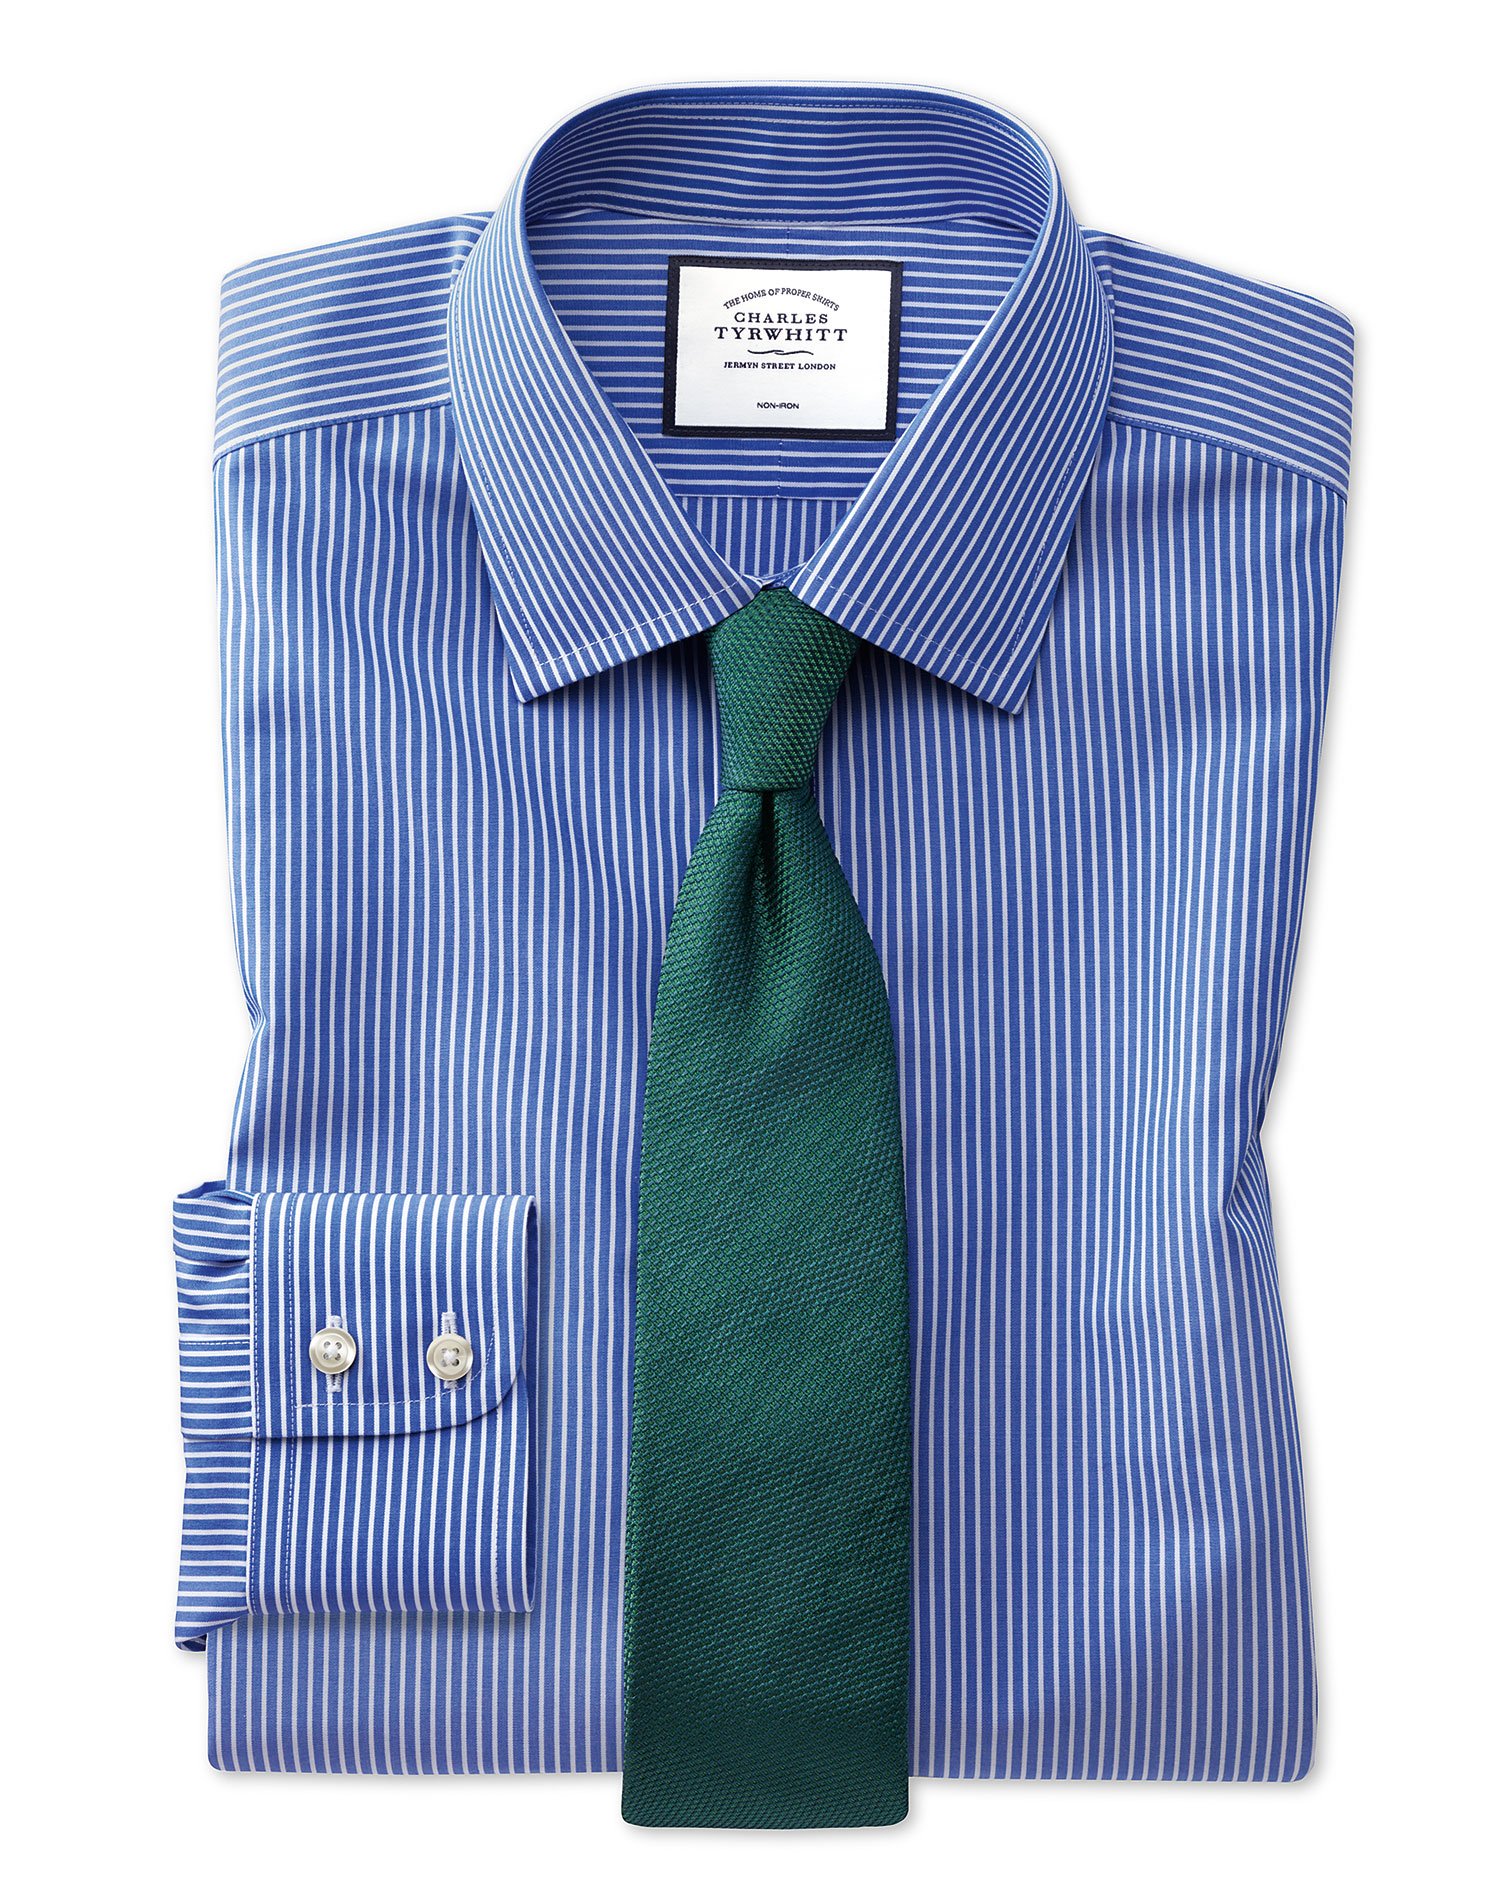 Extra Slim Fit Non-Iron Stripe Blue and White Cotton Formal Shirt Single Cuff Size 15/33 by Charles